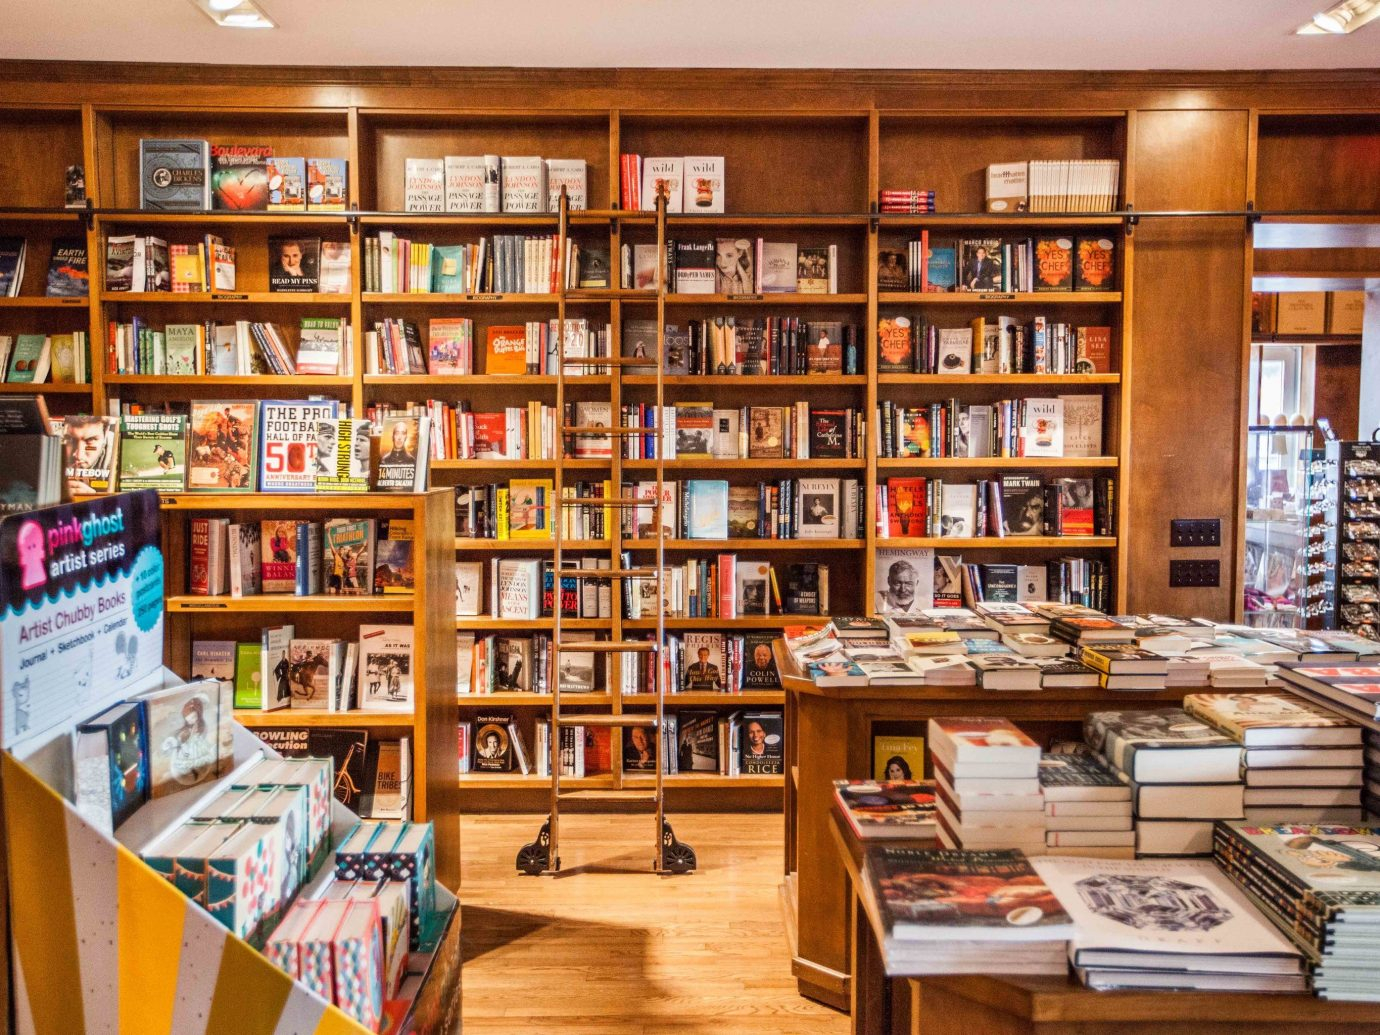 Offbeat shelf indoor book bookselling library public library scene retail room building grocery store Shop